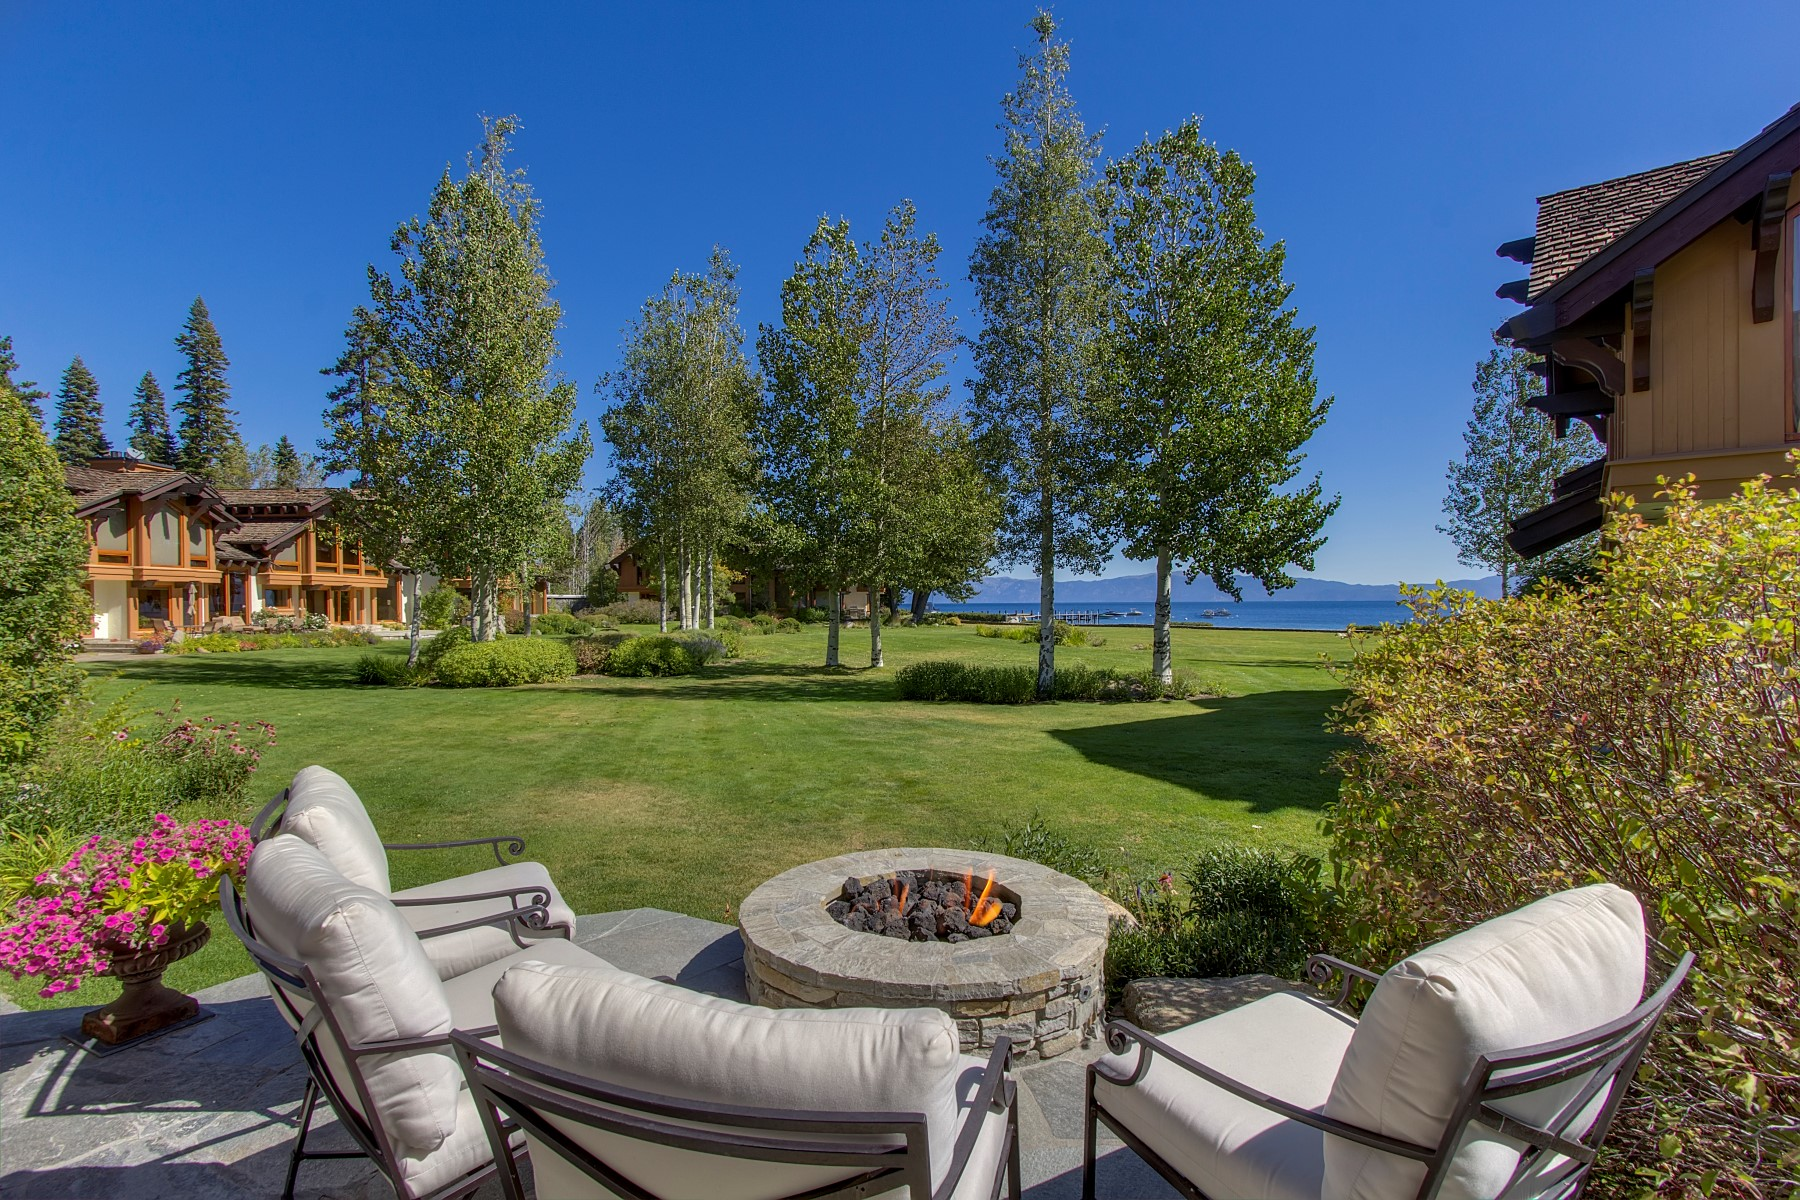 Condominium for Sale at 4000 West Lake Boulevard #13 Fleur Du Lac Estates Homewood, California, 96141 Lake Tahoe, United States